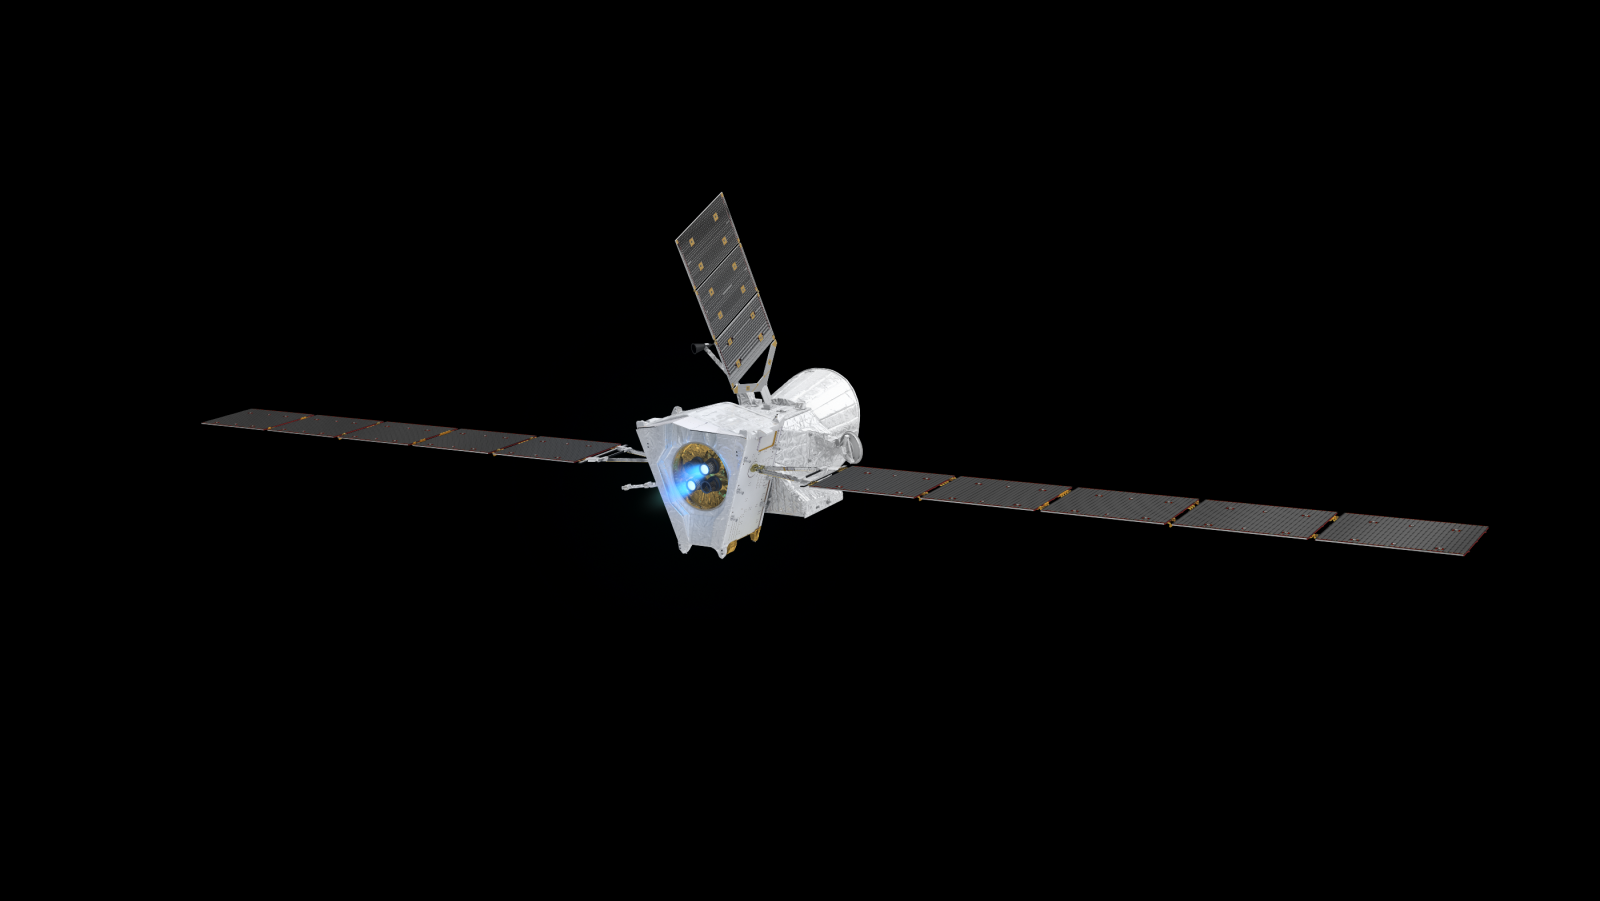 BepiColombo in its cruise configuration. Image Credit: ESA